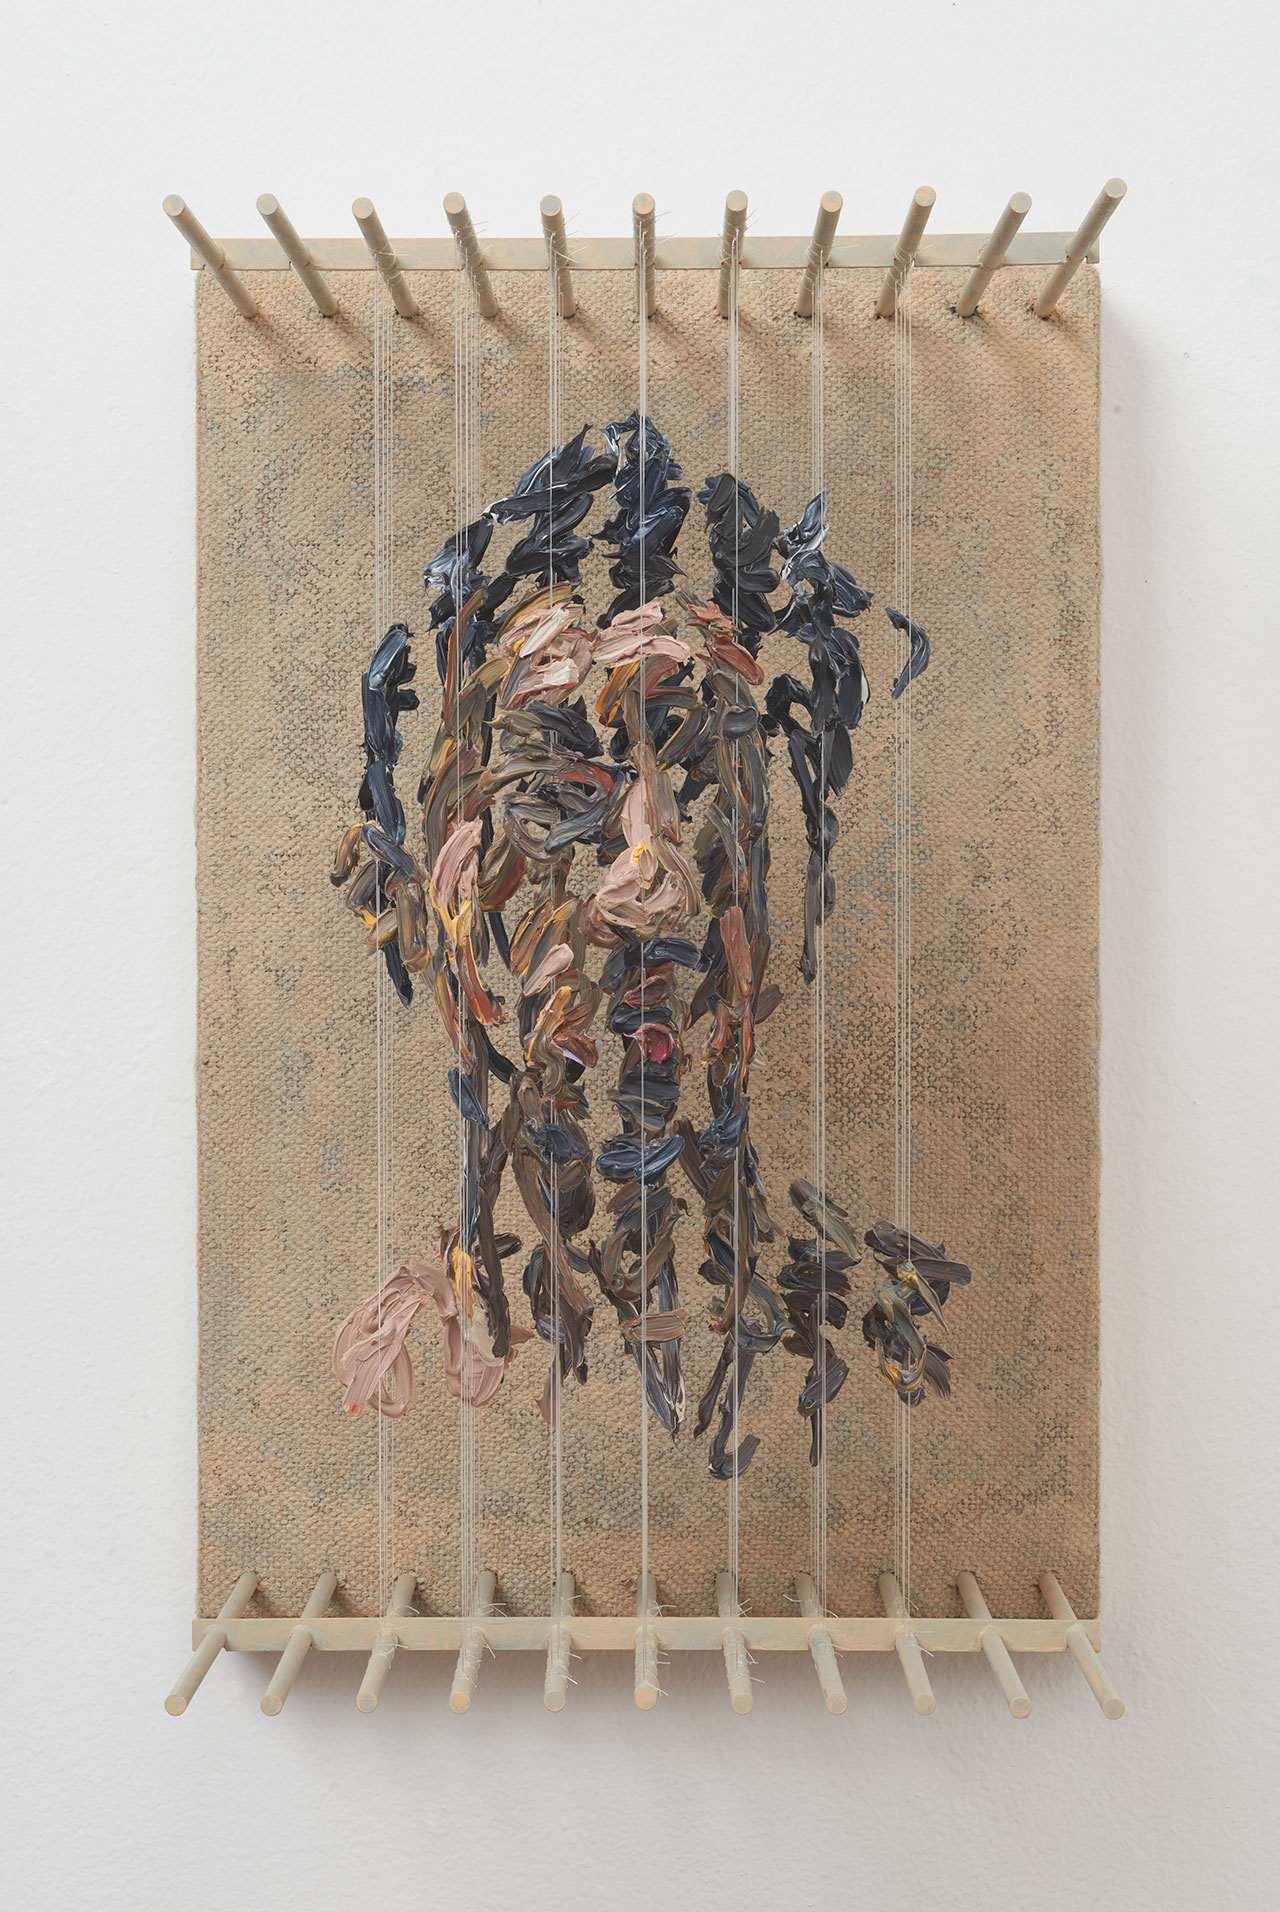 Chris Dorosz, s.r.o, 2017. Acrylic paint on monofilament, metal, jute on board ,14 H x 9.25 W x 11D inches. Photo courtesy of Muriel Guépin and the artist.